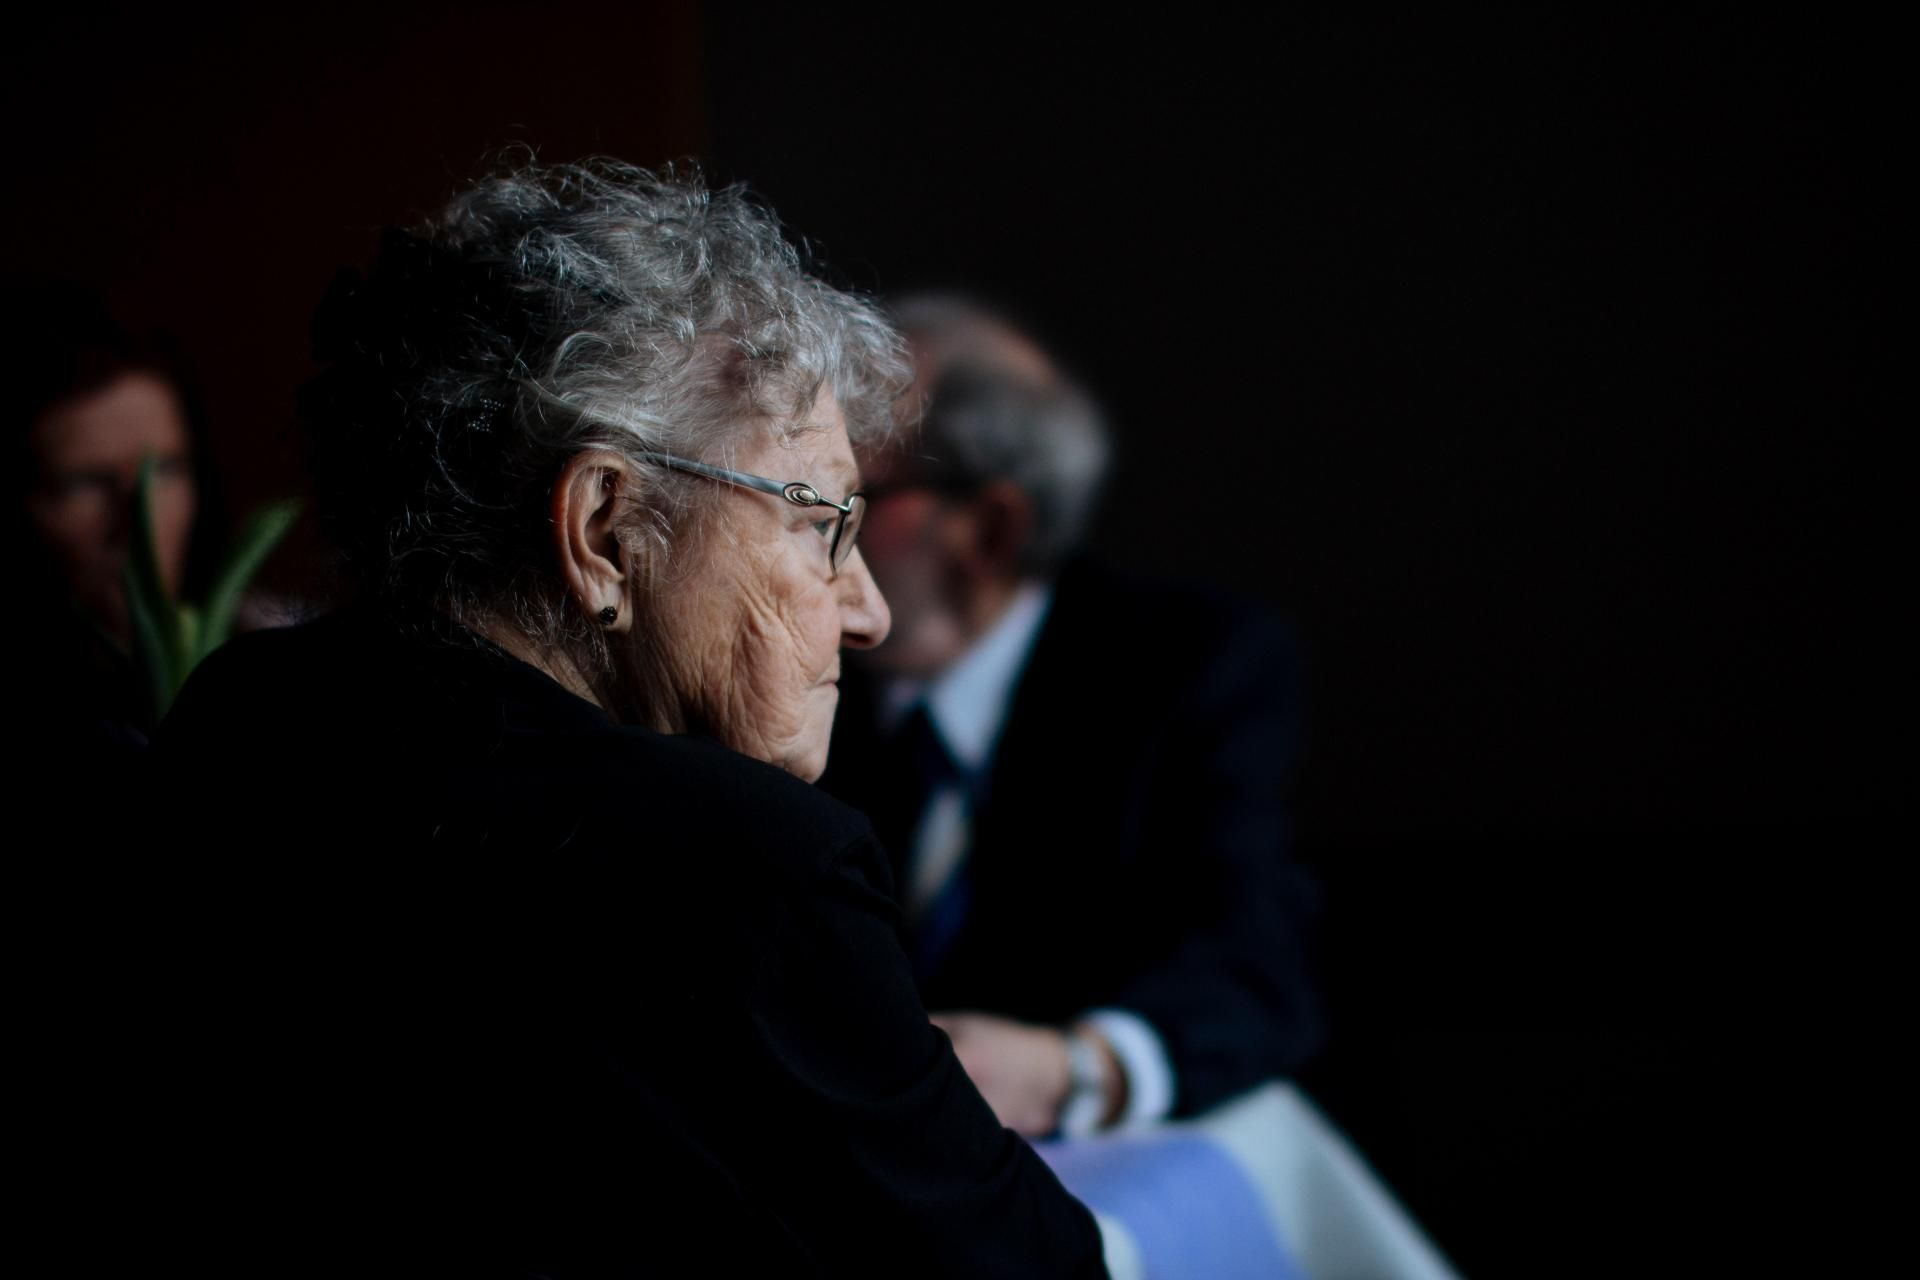 Will Great Resignation Reveal Stubbornness Of Ageism In Hiring?